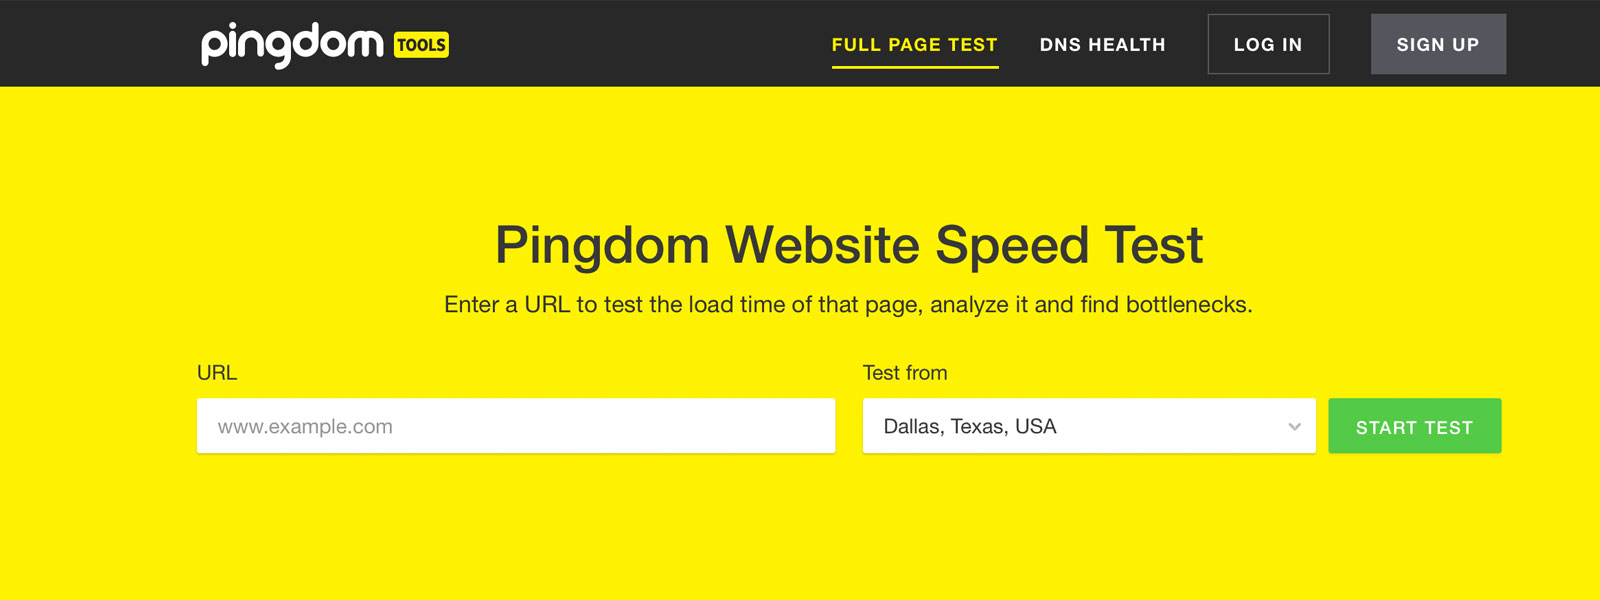 How to use Pingdom to Measure the Speed of a Website - Effectively!